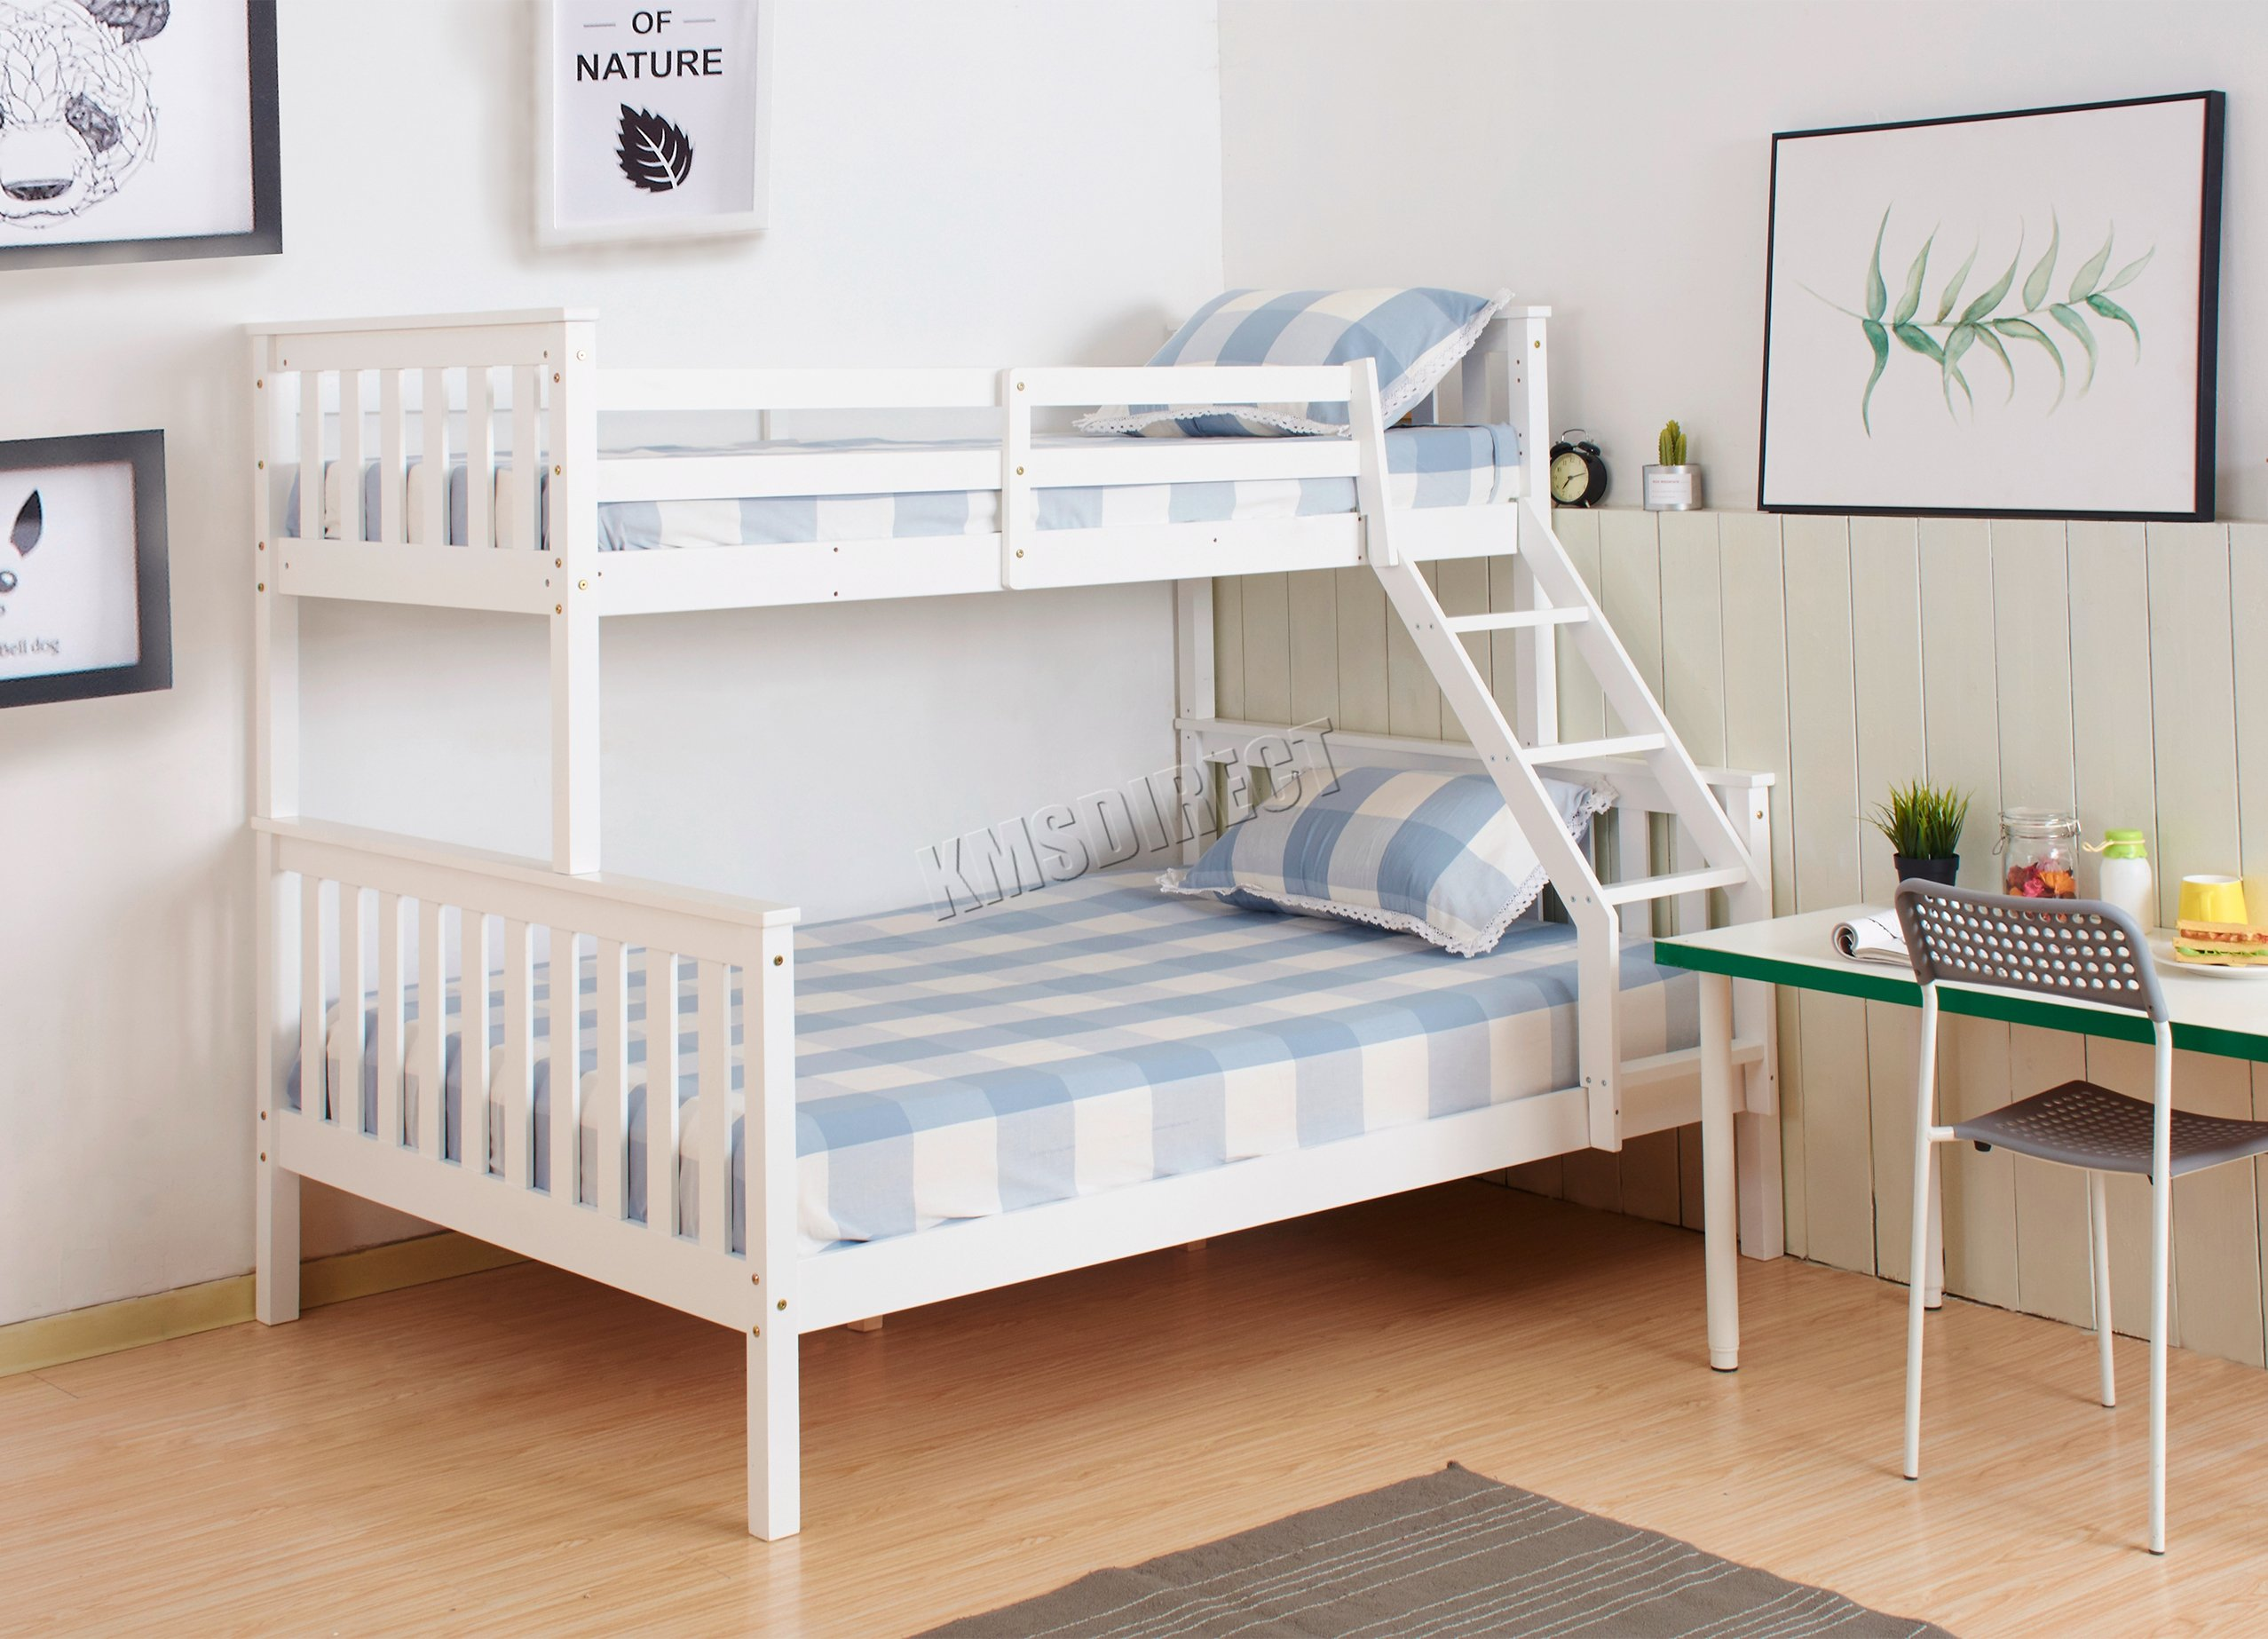 Westwood New Detachable Bunk Beds Single Top Double Base Bed Solid Wood Frame